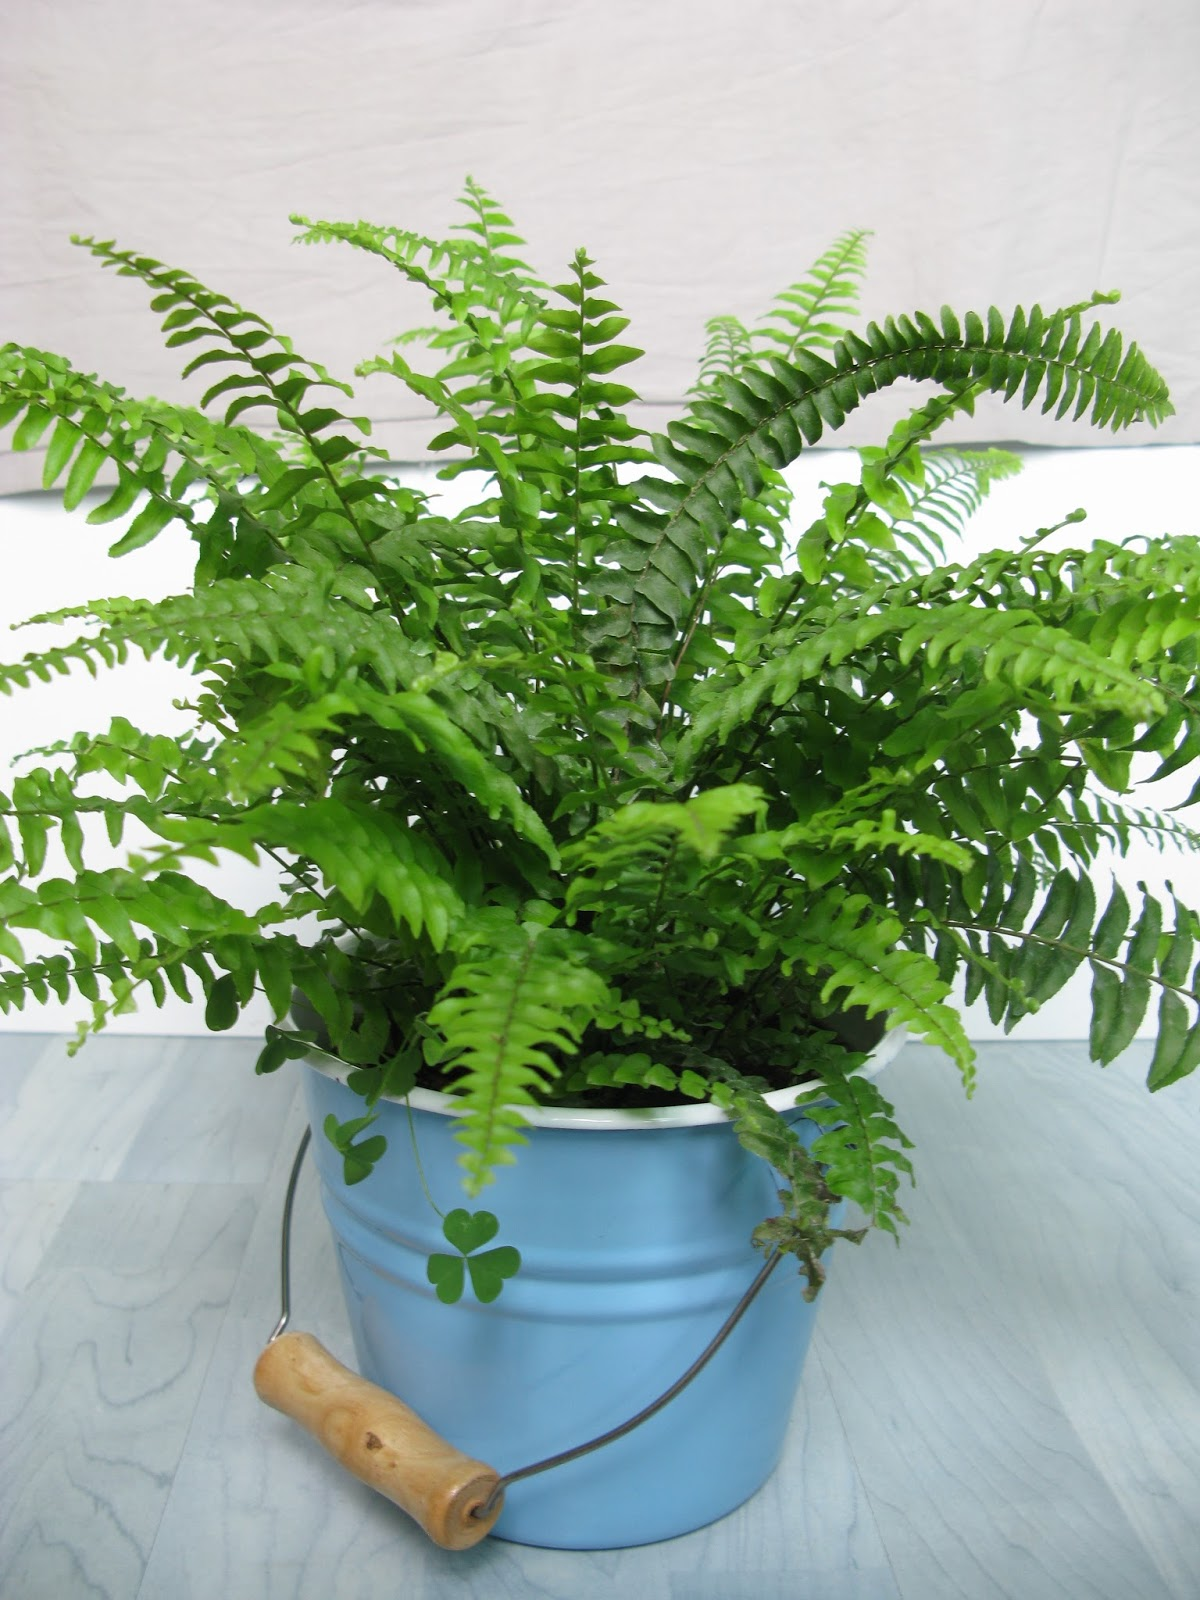 15 Air Purifying Houseplants   Clean The Air In Your Home With These NASA Approved Air-Cleaning Houseplants